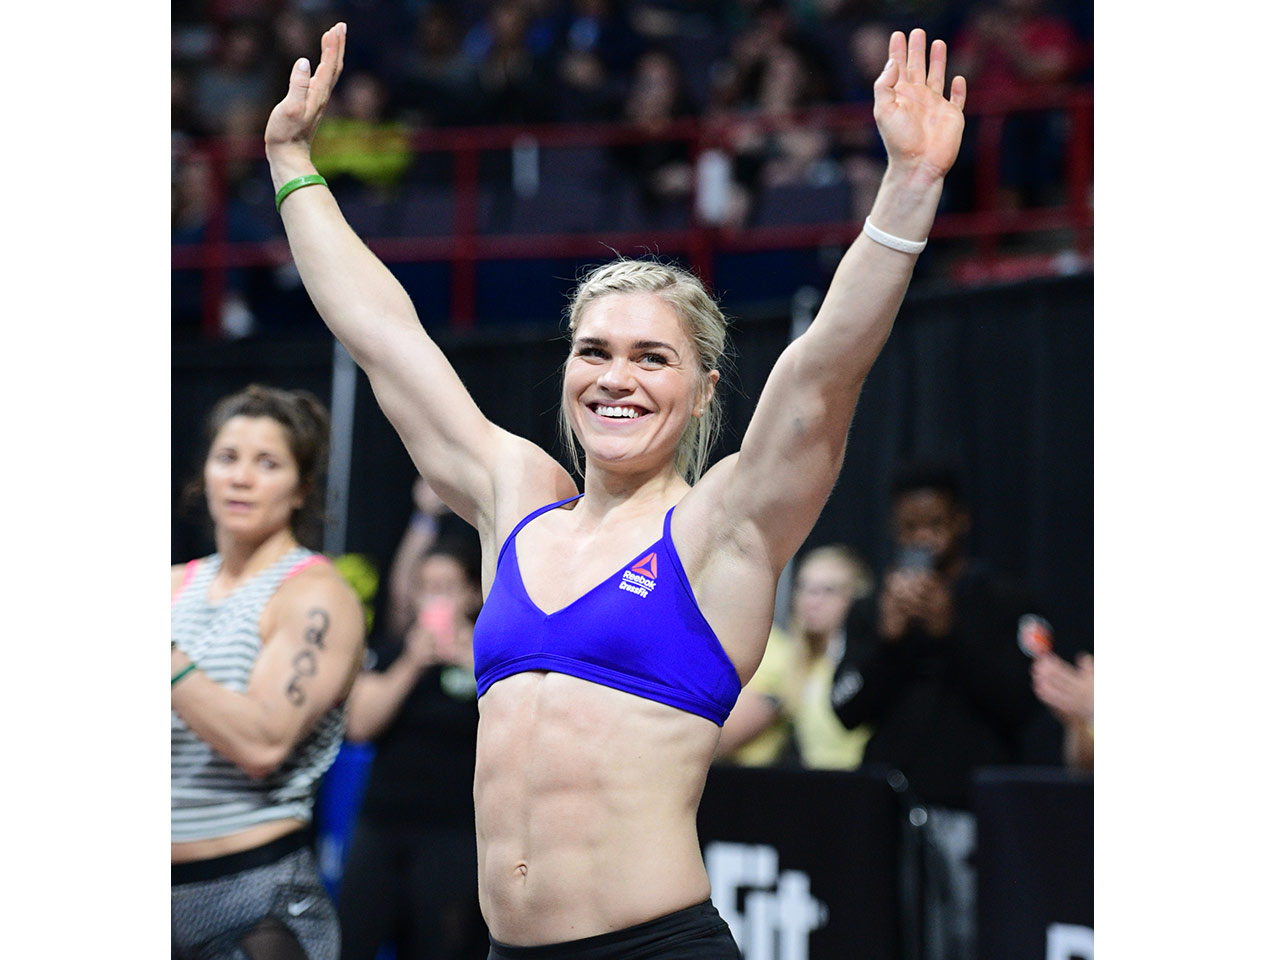 e69ac1c5c4 The Top 20 Women to Watch at the 2017 CrossFit Games